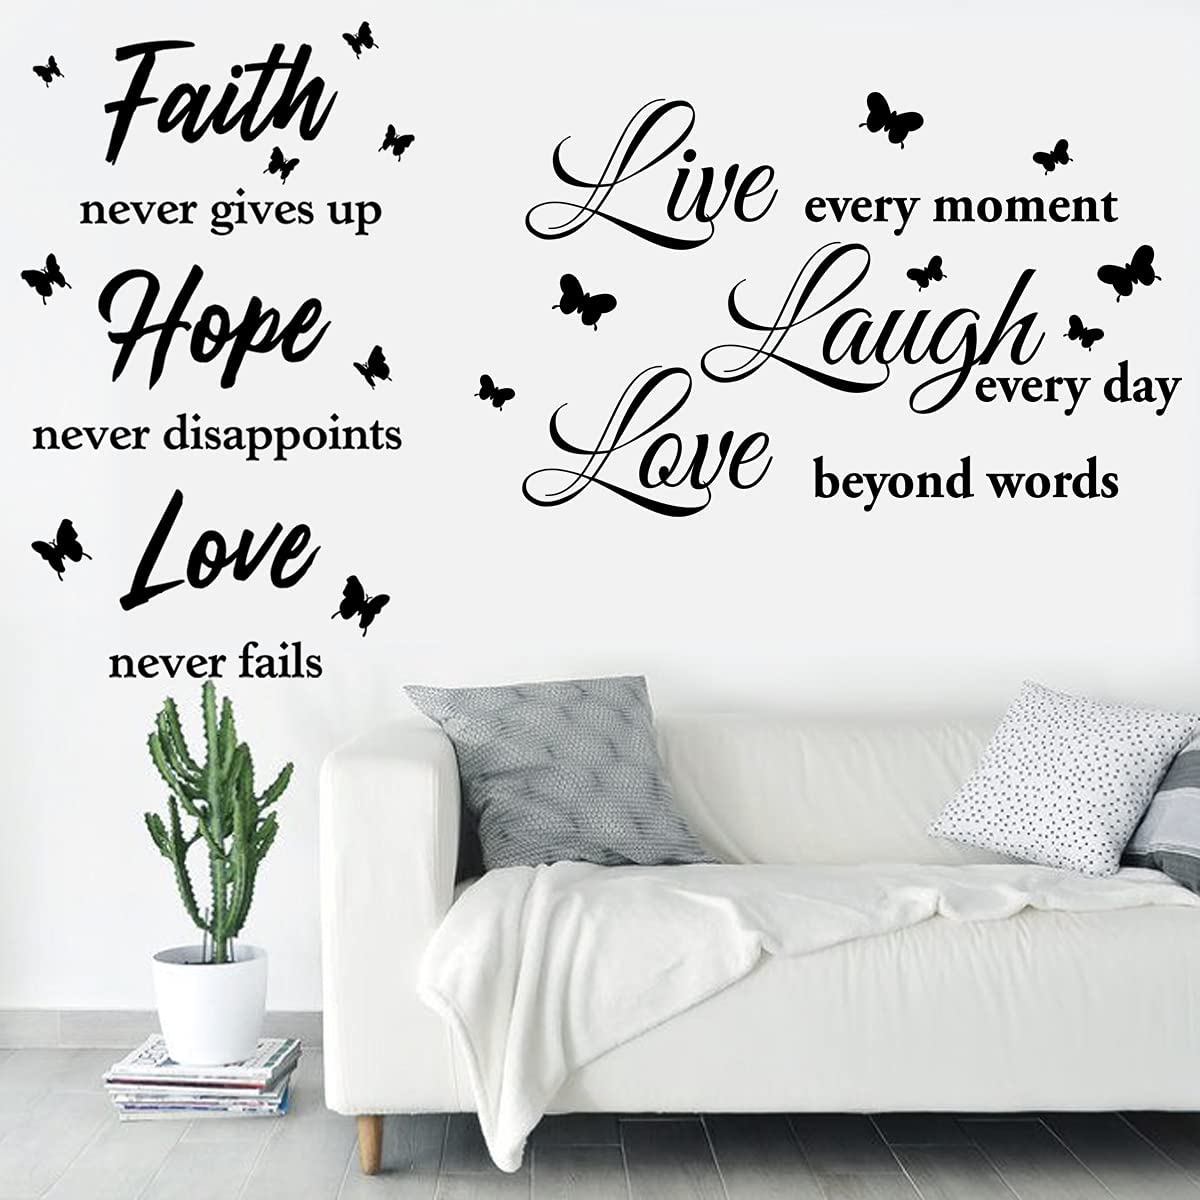 2 Sheets Wall Decor Sticker Quotes Live Every Moment Vinyl Wall Decals Living Room Motivational Vinyl Wall Sticker Christian Quotes Sayings Faith Hope Love for Bedroom Home Decorations.